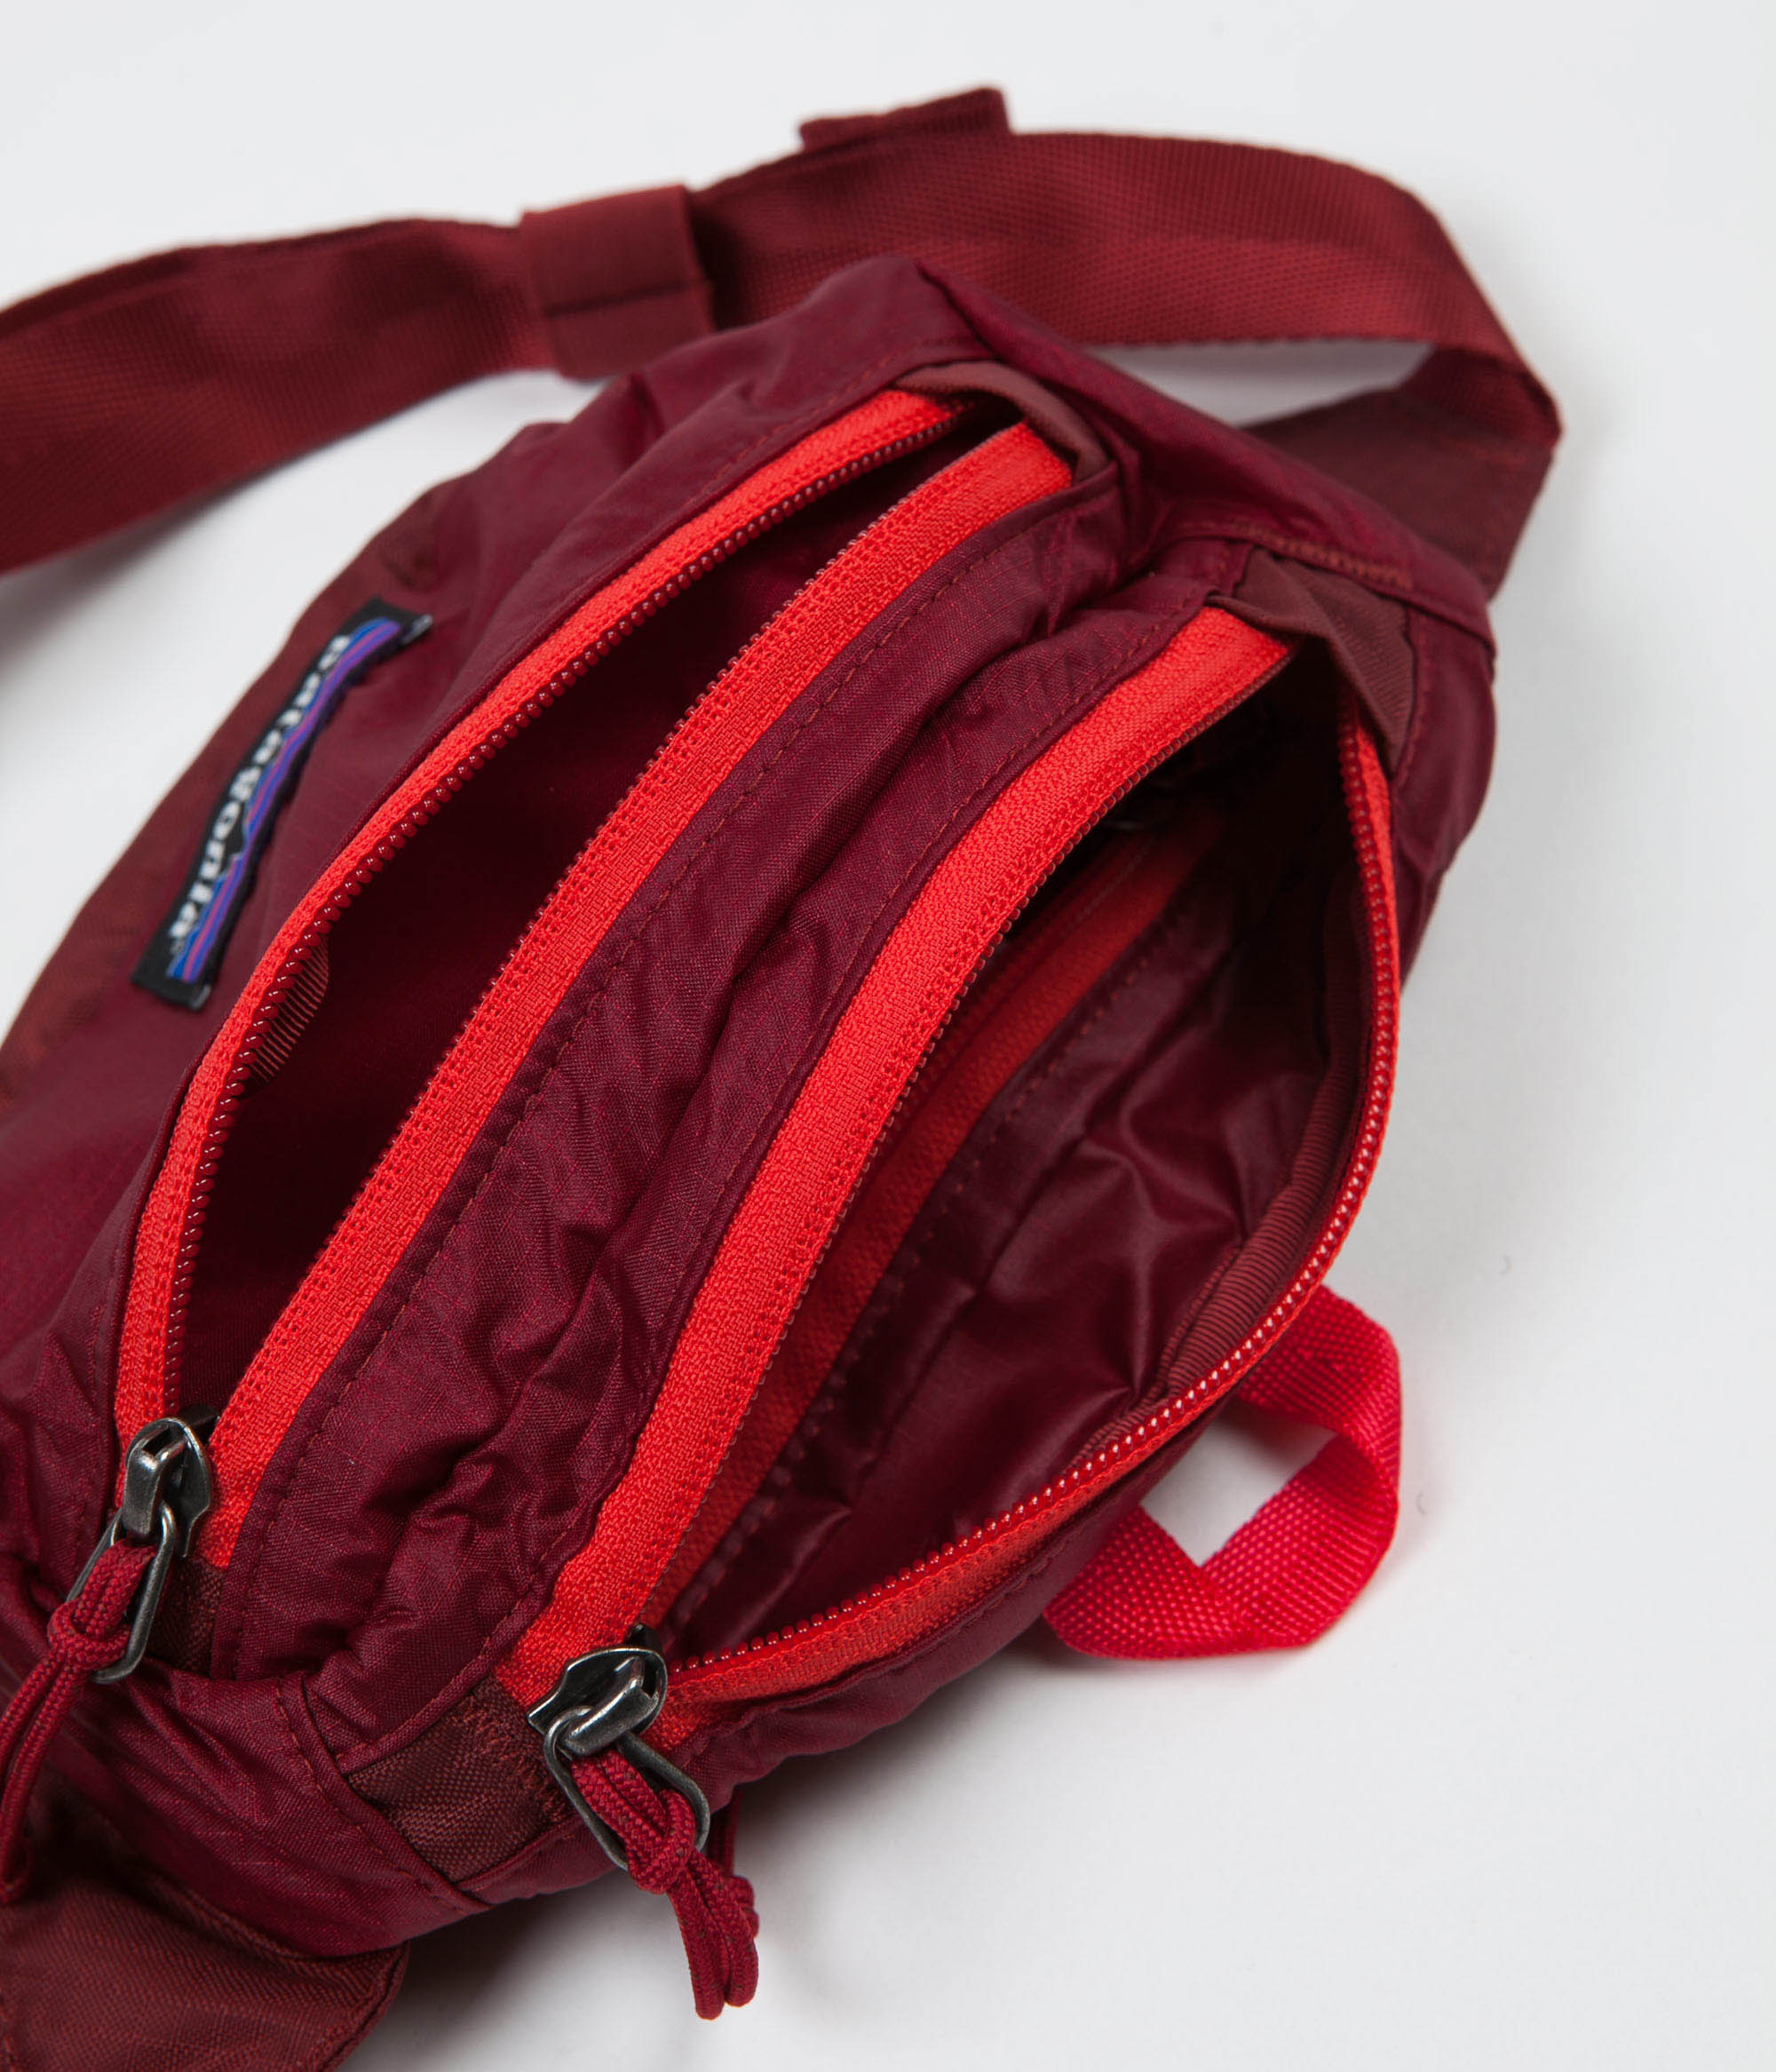 5ae3a82ded1 ... Patagonia Lightweight Travel Mini Hip Pack - Oxide Red ...